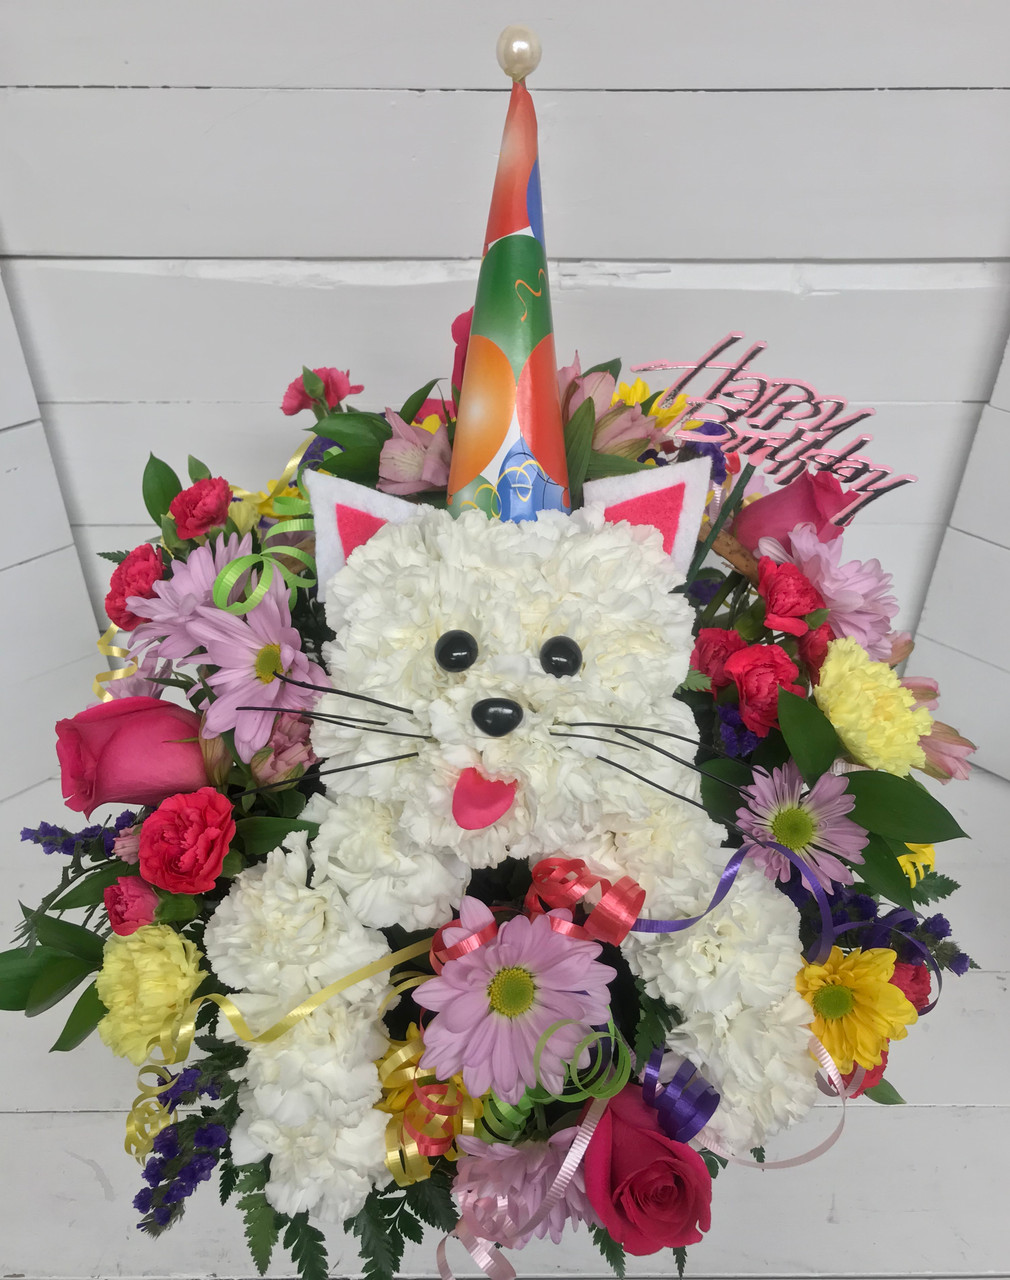 "Happy Birthday Party Cat"" Fresh Arrangement"" - Centerville Florists"